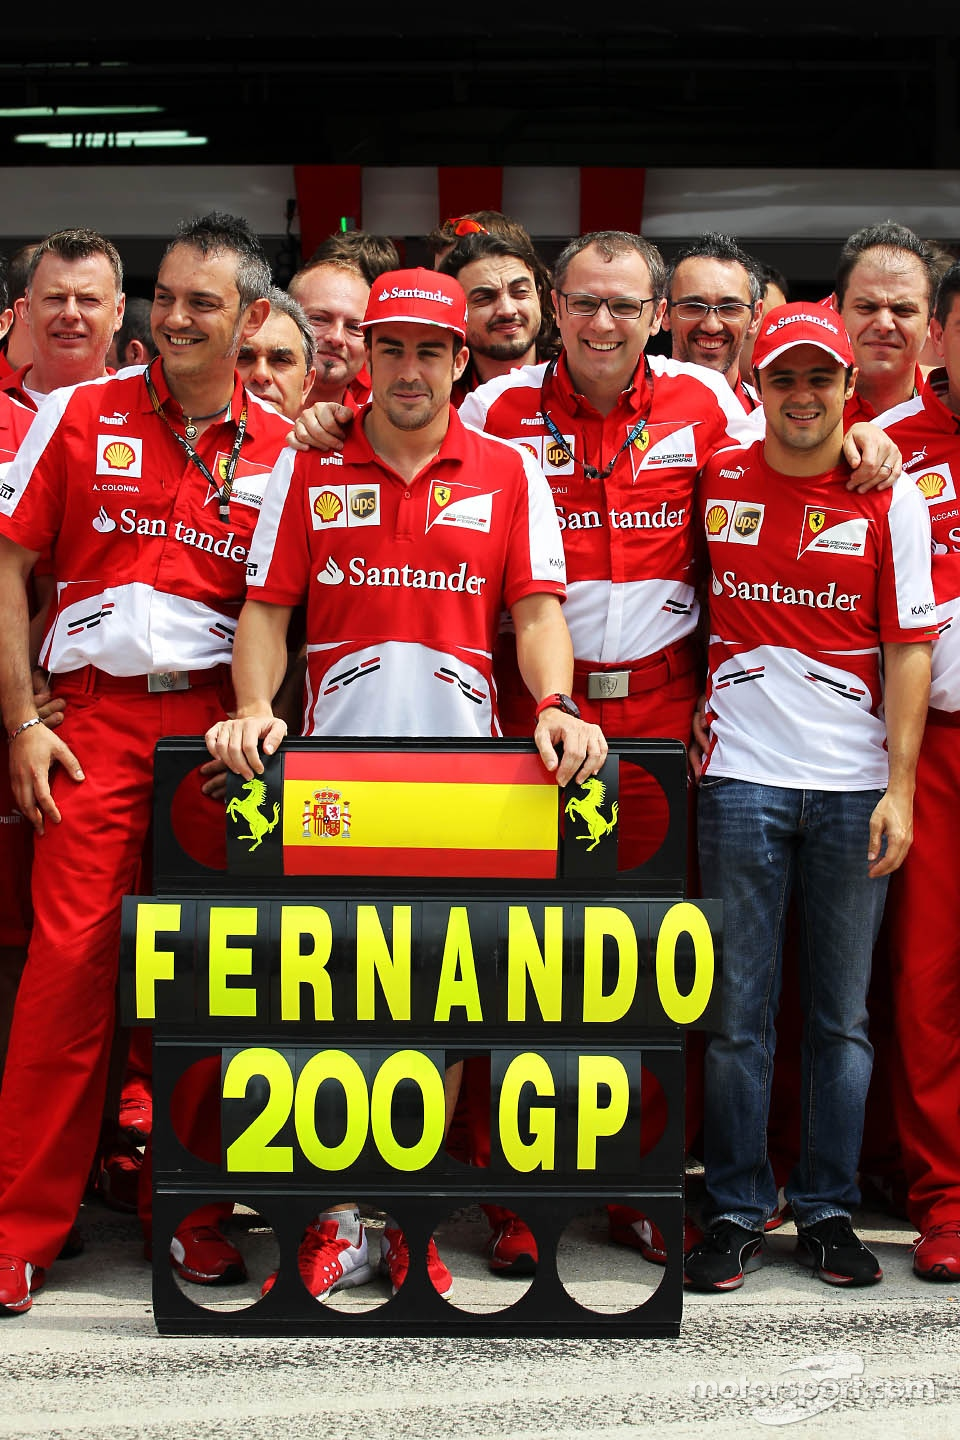 Fernando Alonso, Ferrari celebrates his 200th GP with team mate Felipe Massa, Ferrari, Stefano Domenicali, Ferrari General Director, and the team